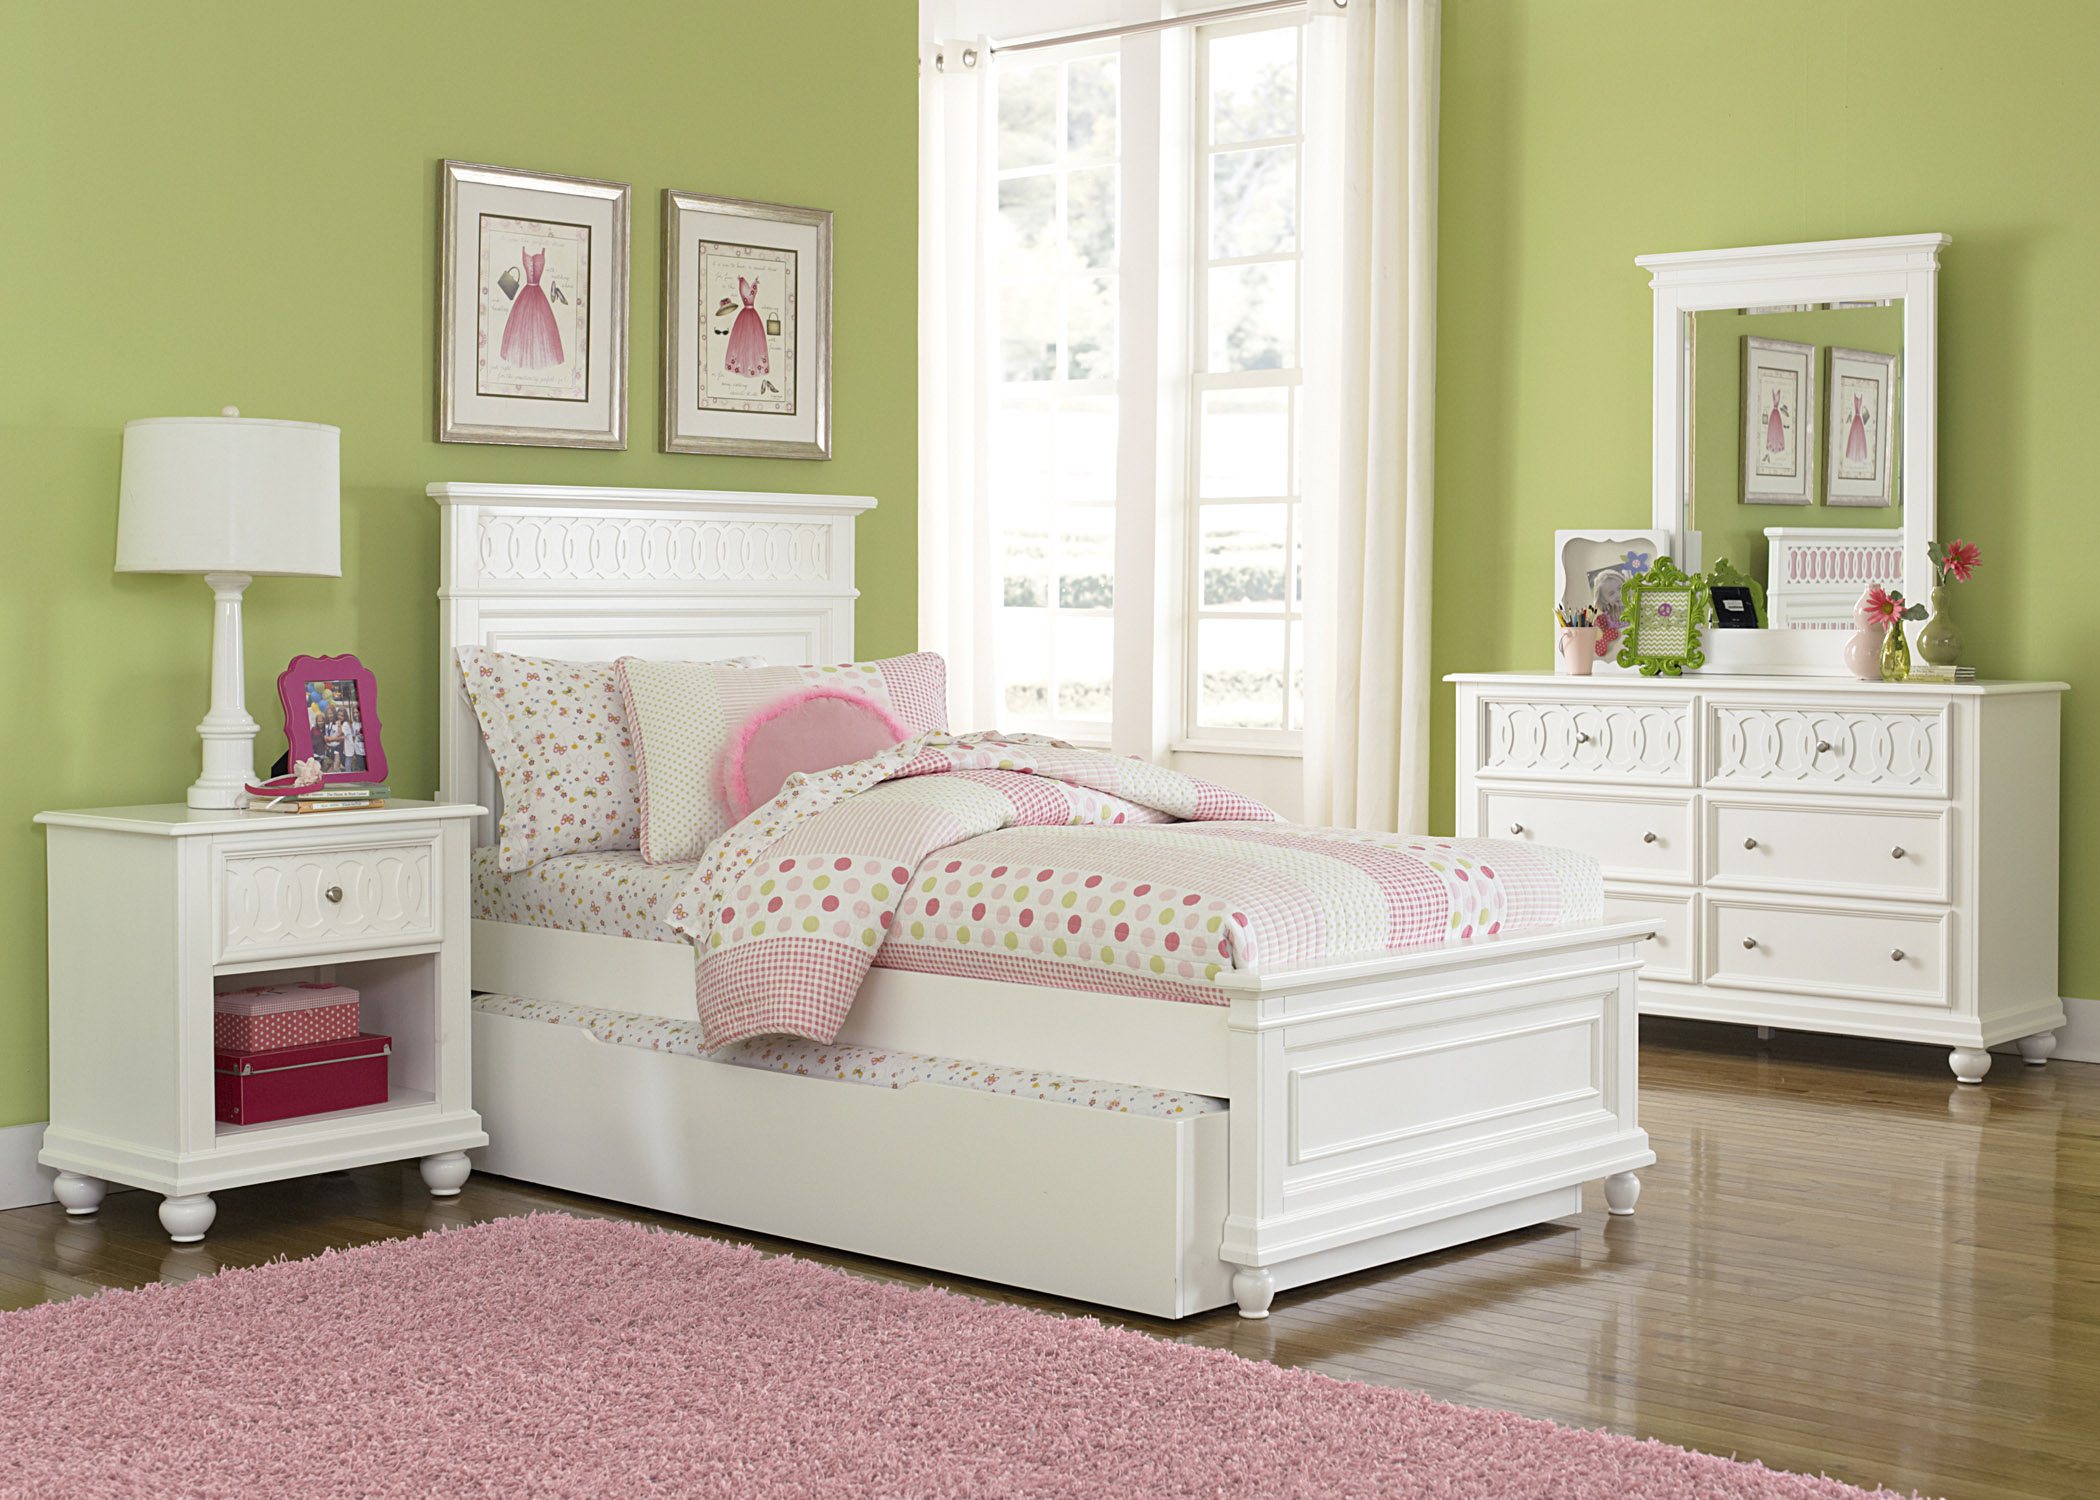 Children or Youth Bedroom Sets and Décor, Bangor, Maine ... - photo#31